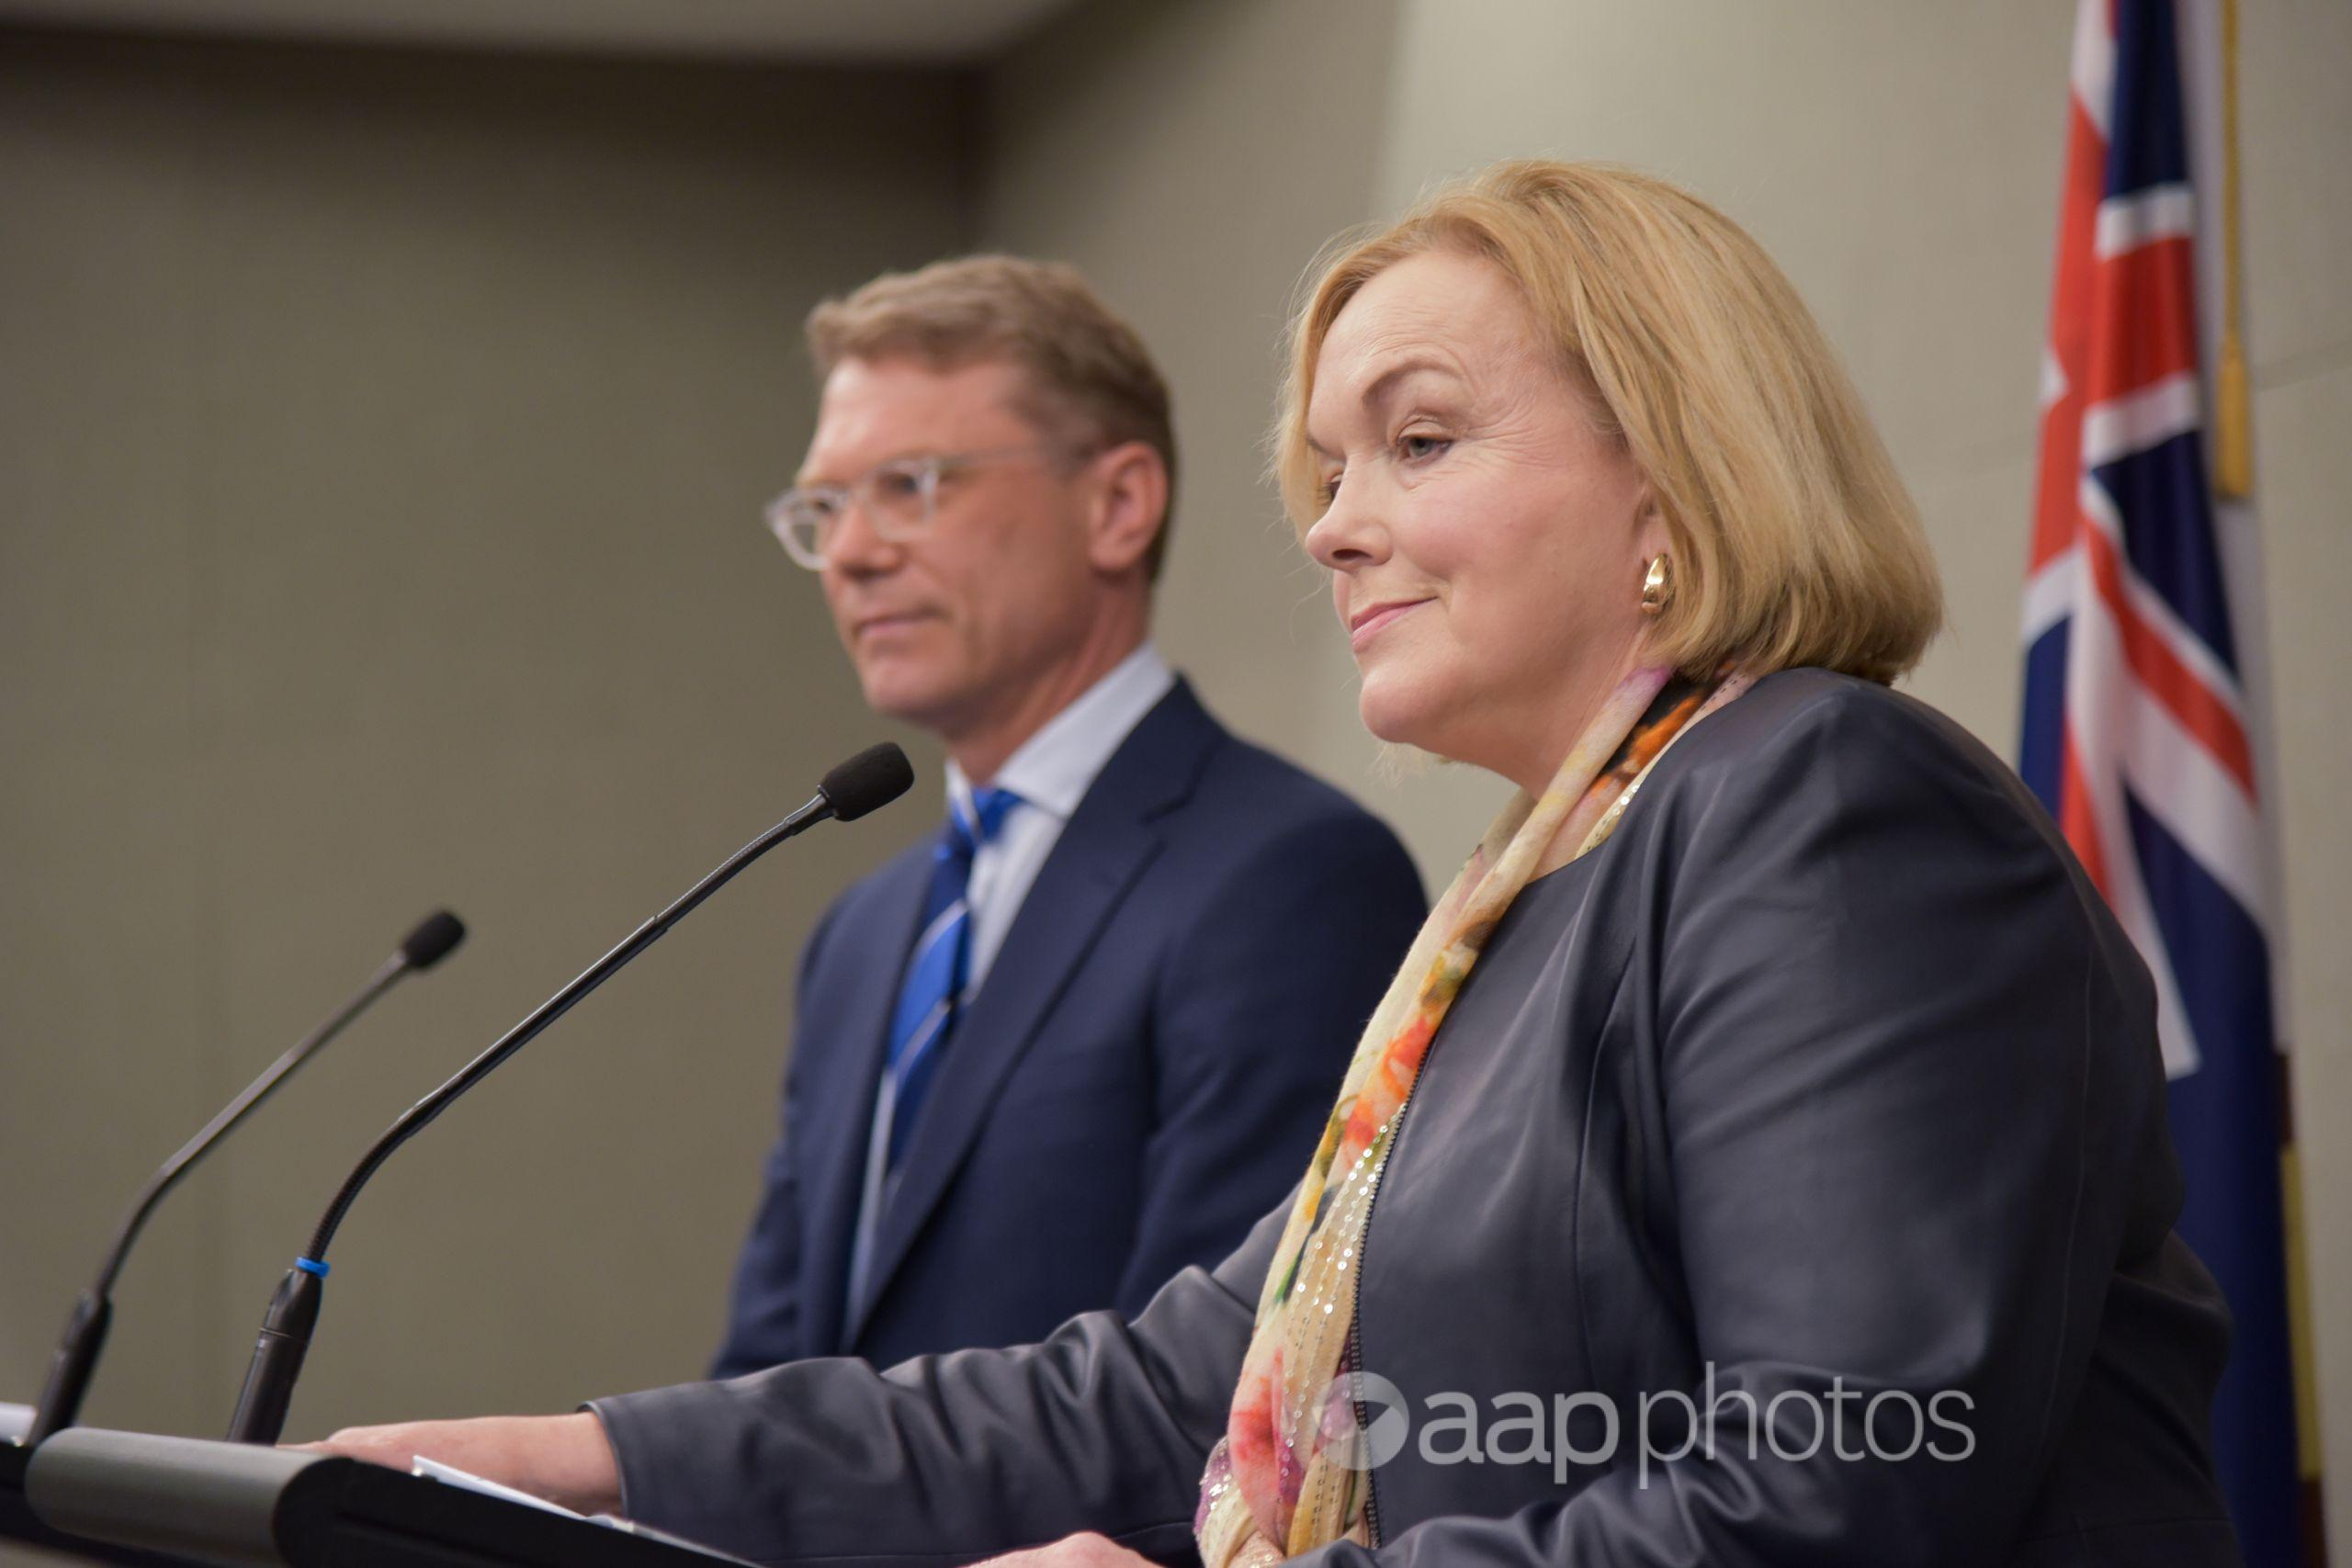 National's Paul Goldsmith and Judith Collins